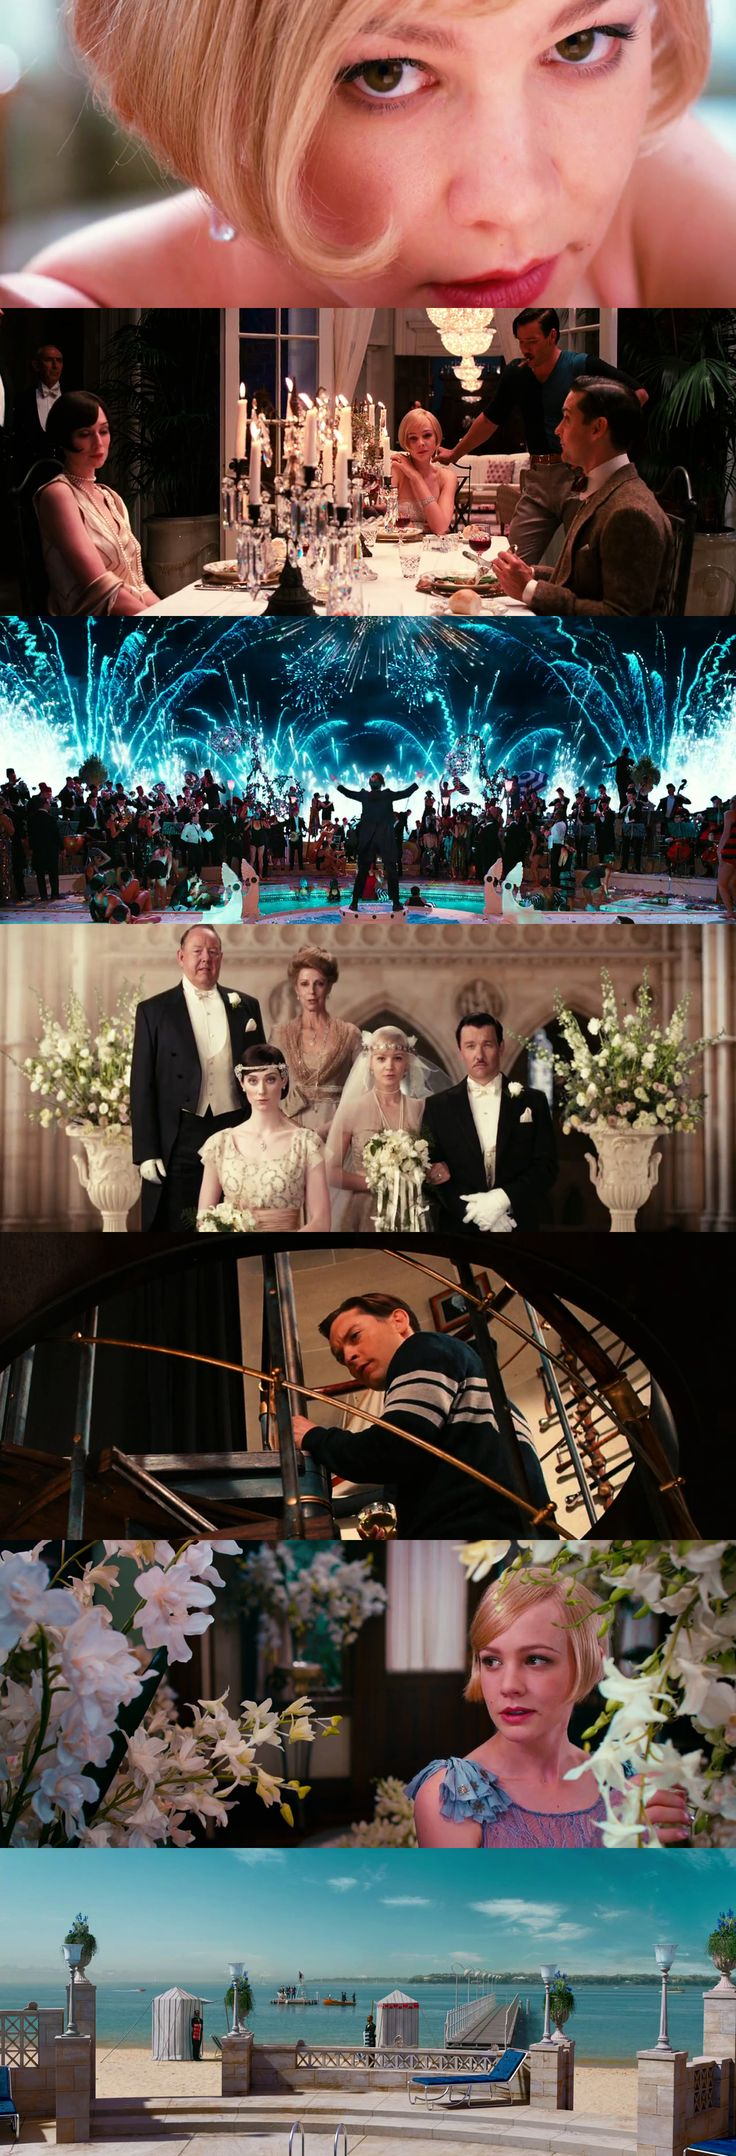 The Great Gatsby, cinematography by Simon Duggan